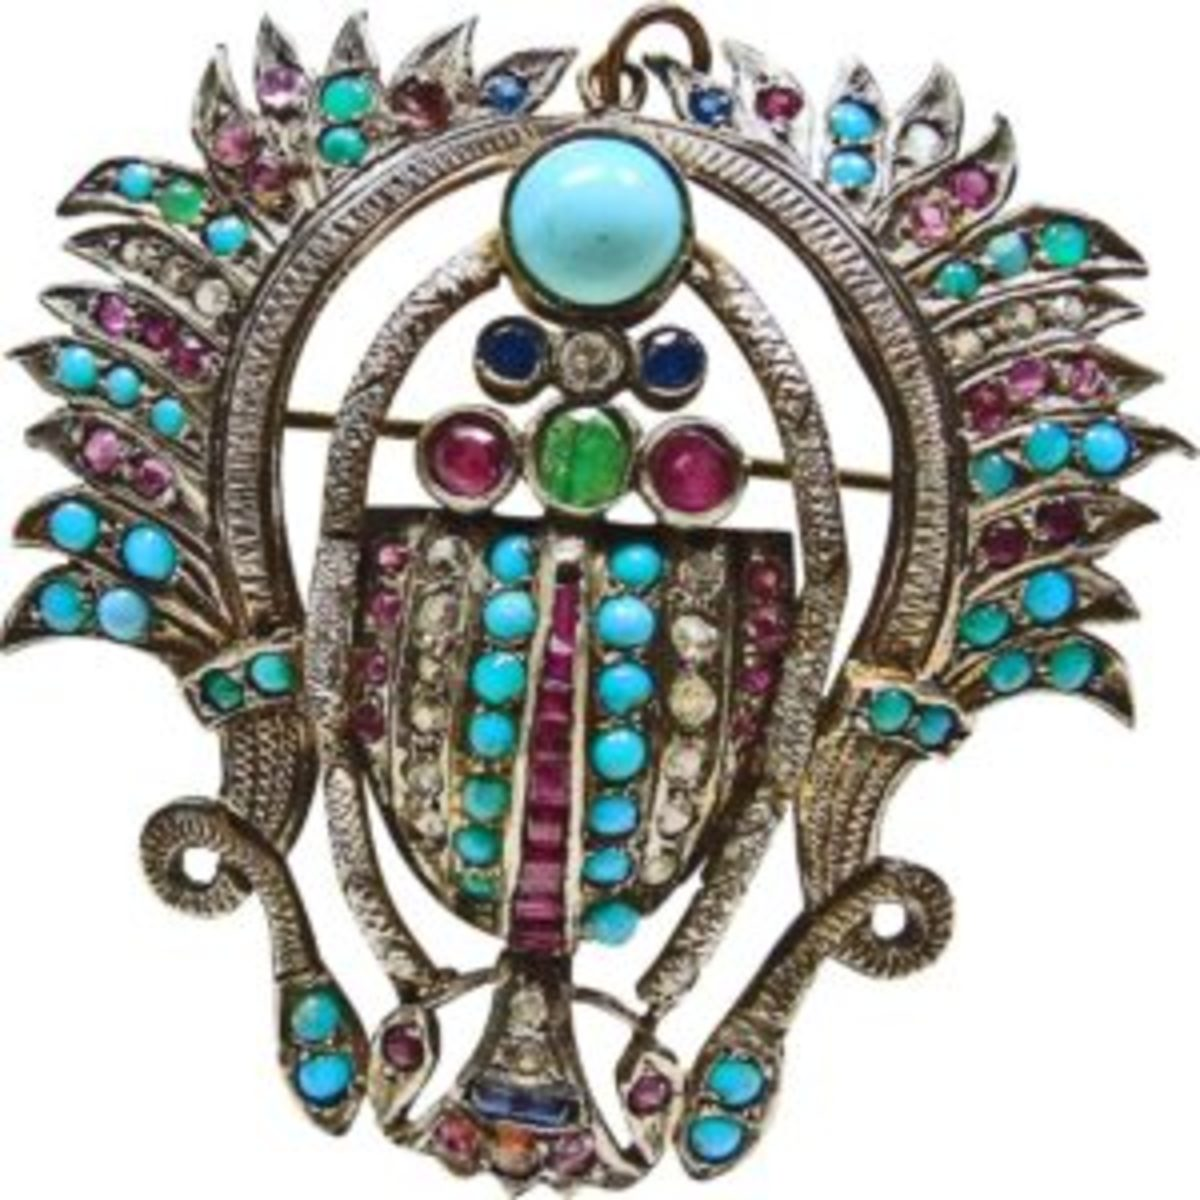 Vintage Egyptian Silver Scarab with Turquoise, Synthetic and Natural Rubies, Sapphires, Emeralds and White Paste Stones $500